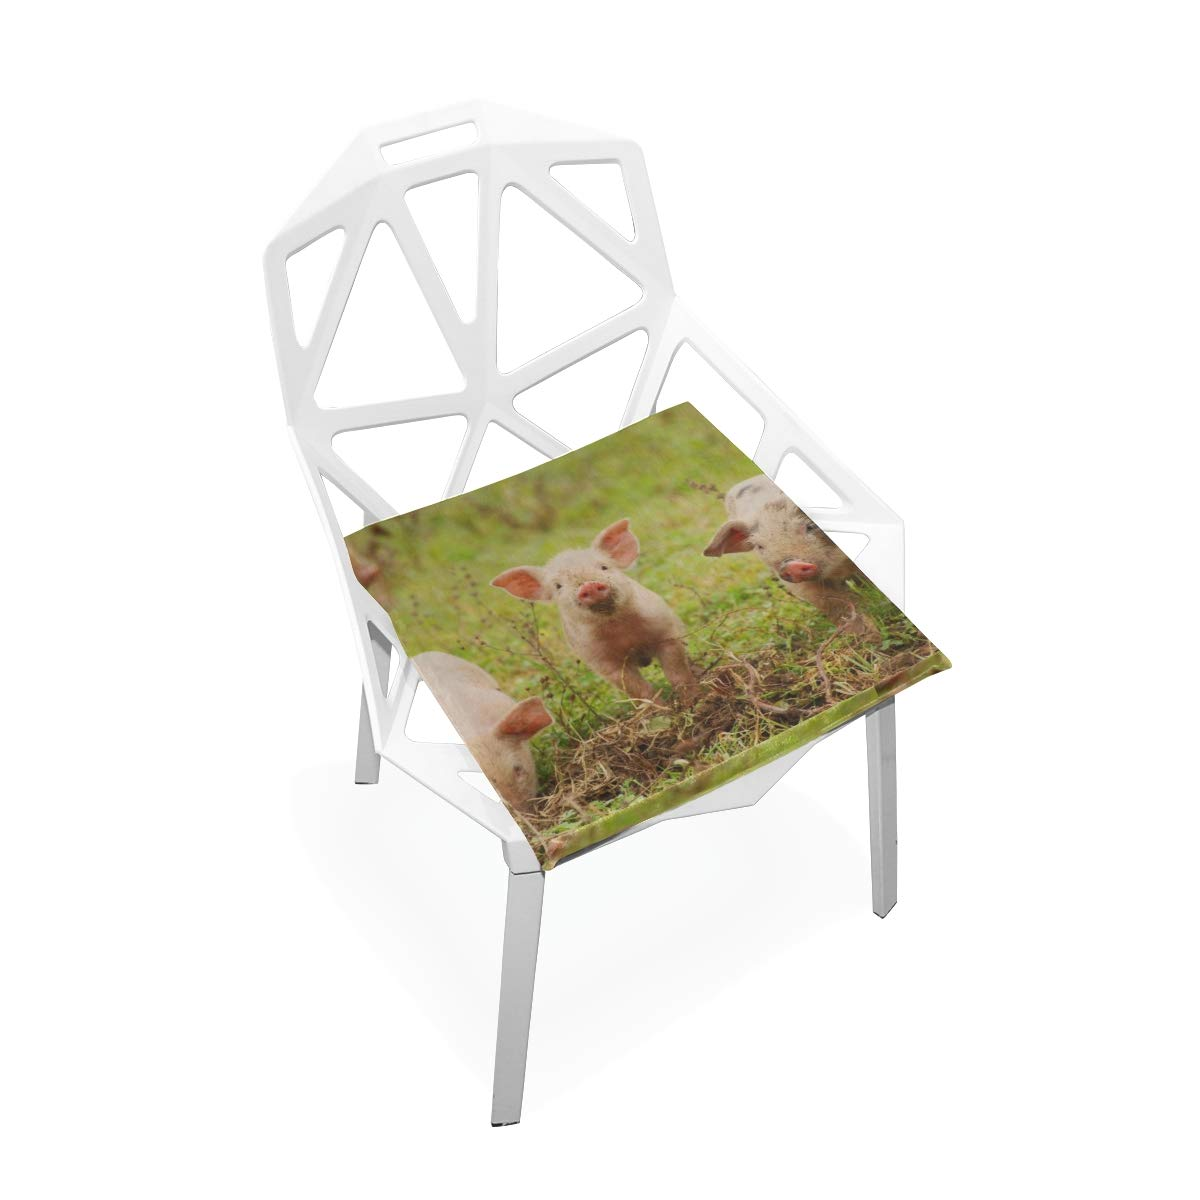 Lexav Farm Animal Cute Funny Young Pig Custom Soft Non-Slip Square Memory Foam Chair Pads Cushions Seat for Home Kitchen Dining Room Office Wheelchair Desk Wooden Furniture Indoor 16 X 16 Inch